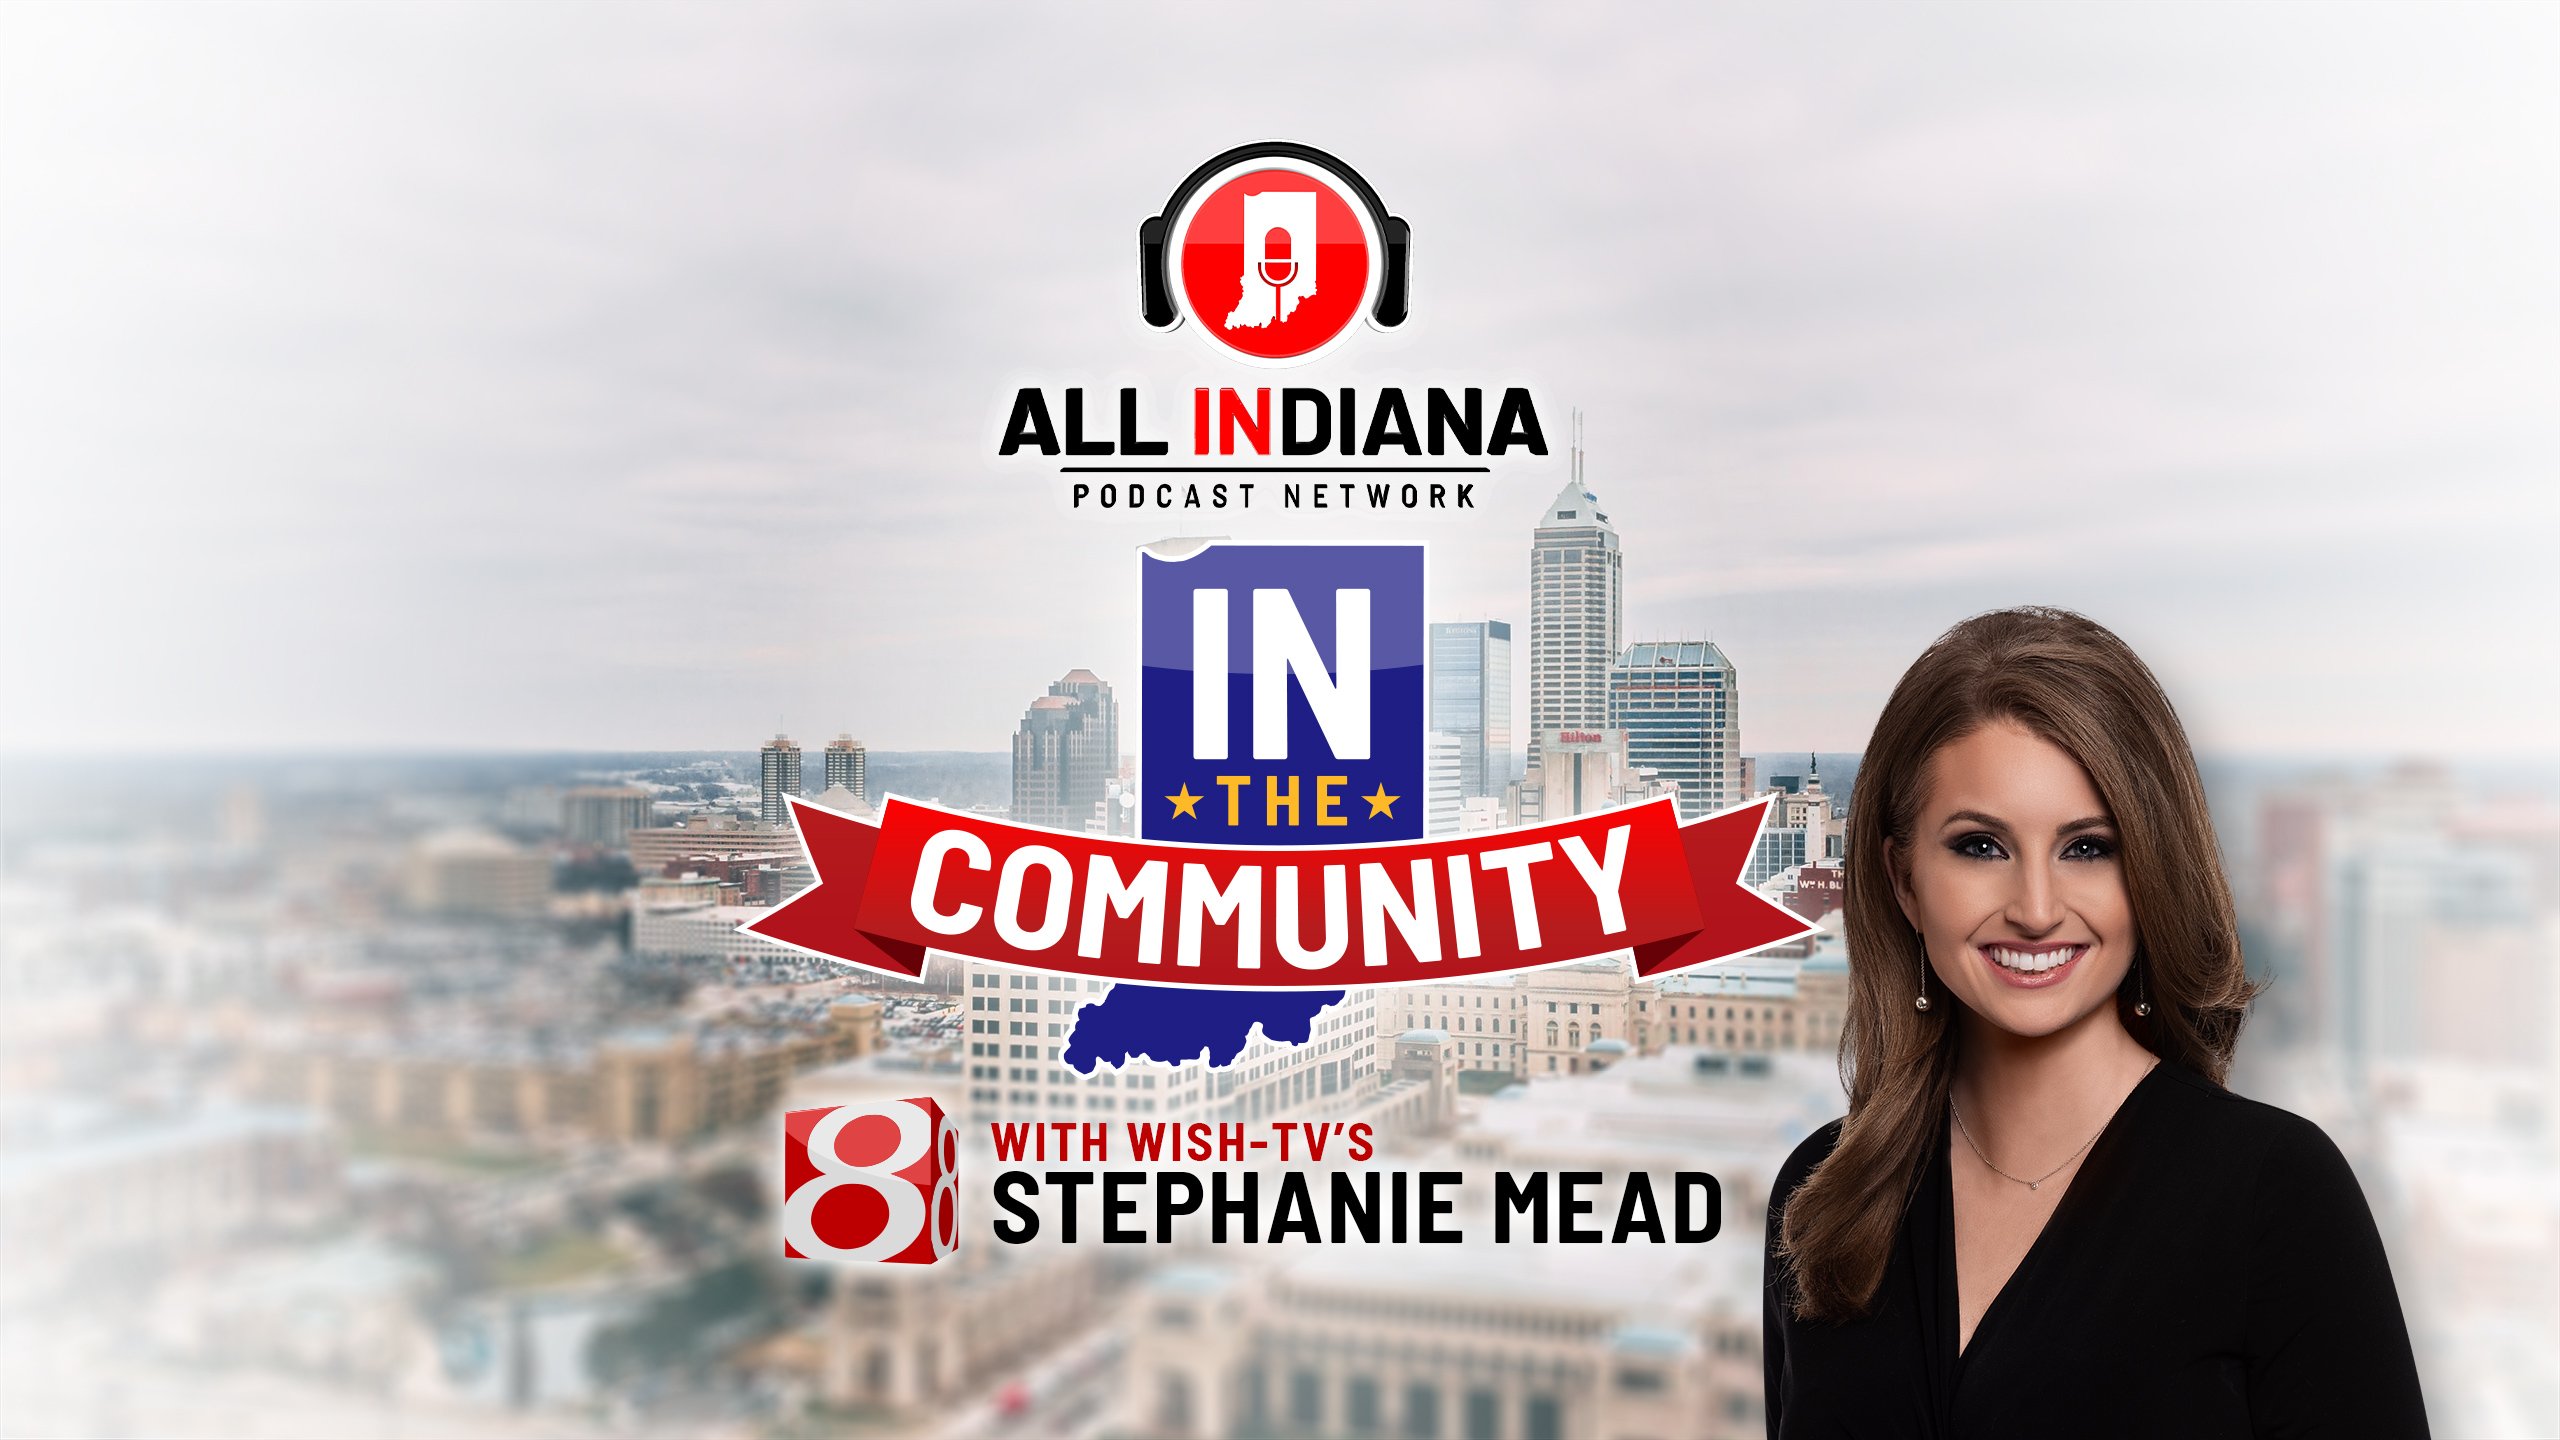 Great Pasta Push and more community events! - WISH-TV